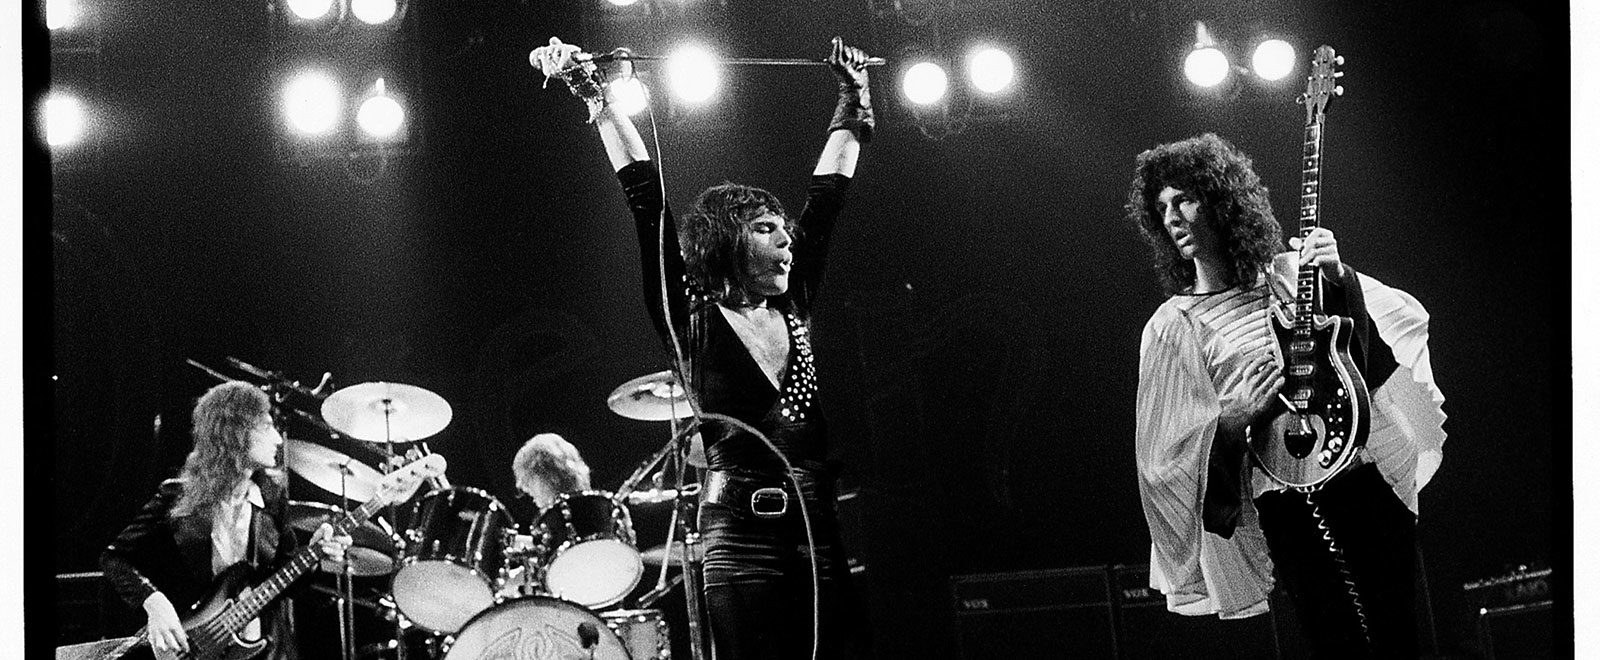 KILLER QUEEN: REVISITING 1974 WITH MICK ROCK